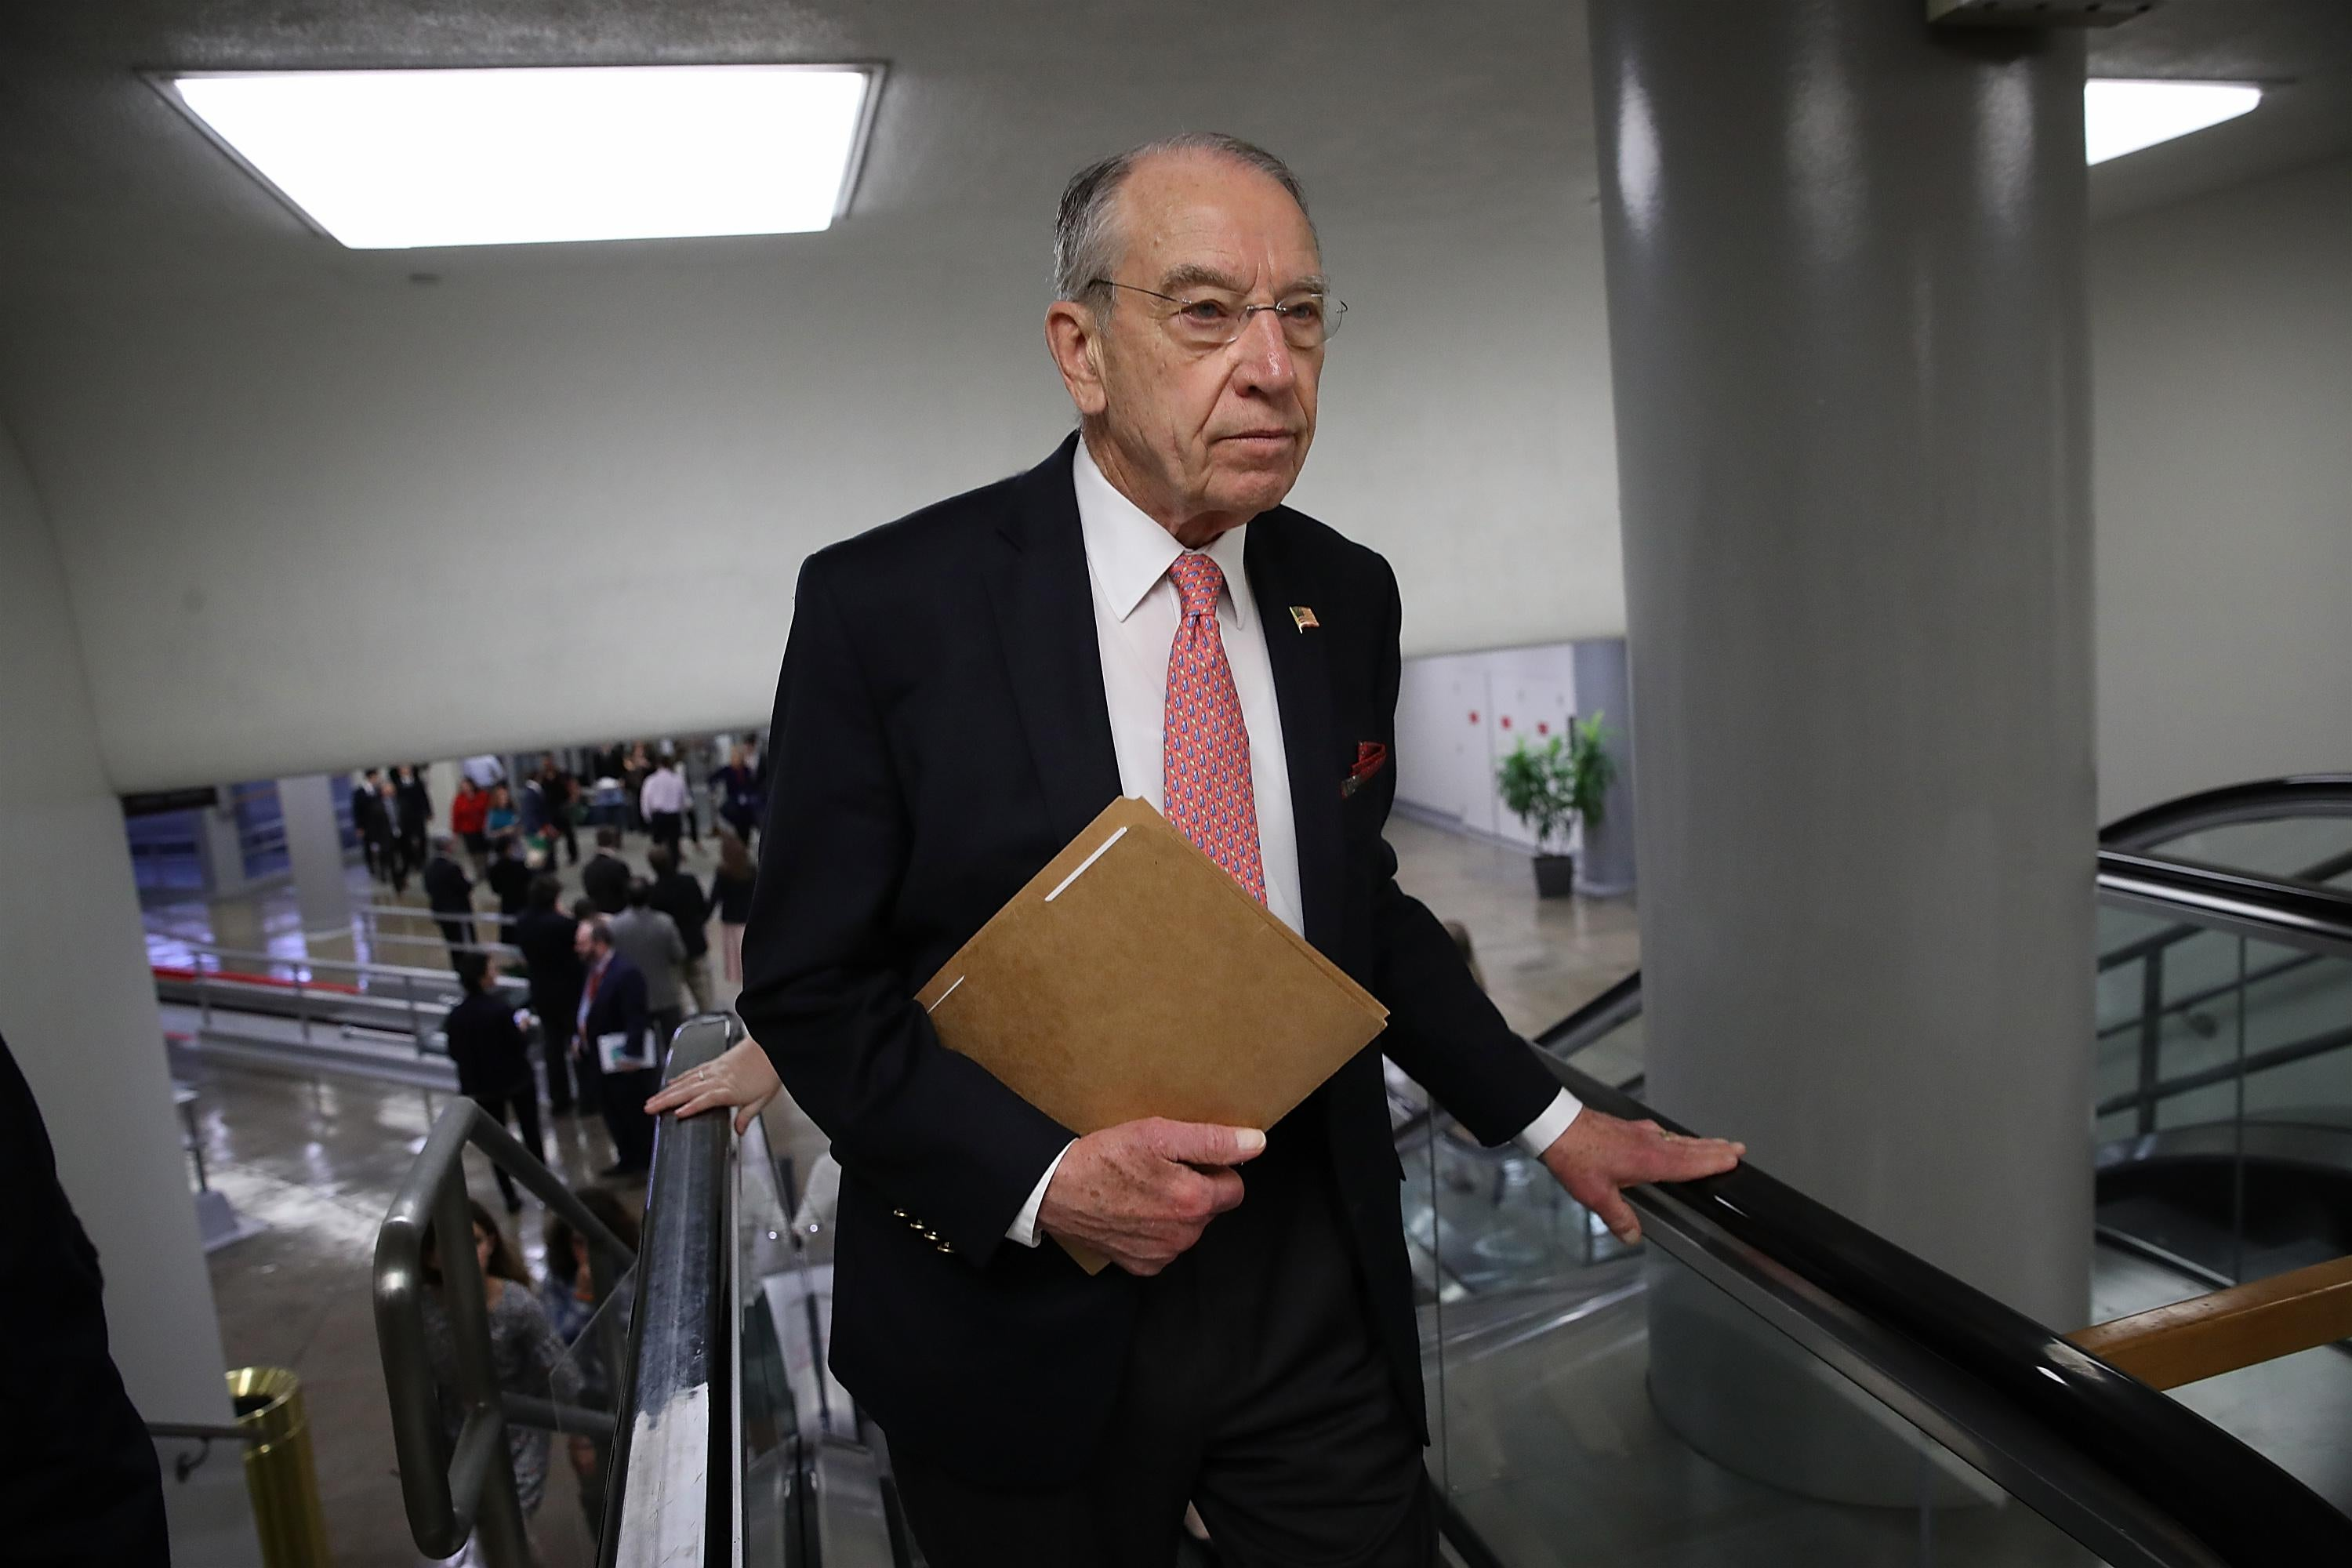 Chuck Grassley walks to the Senate chamber for a vote after the Judiciary Committee voted 14-7 to advance legislation designed to protect special counsel Robert Mueller's investigation.